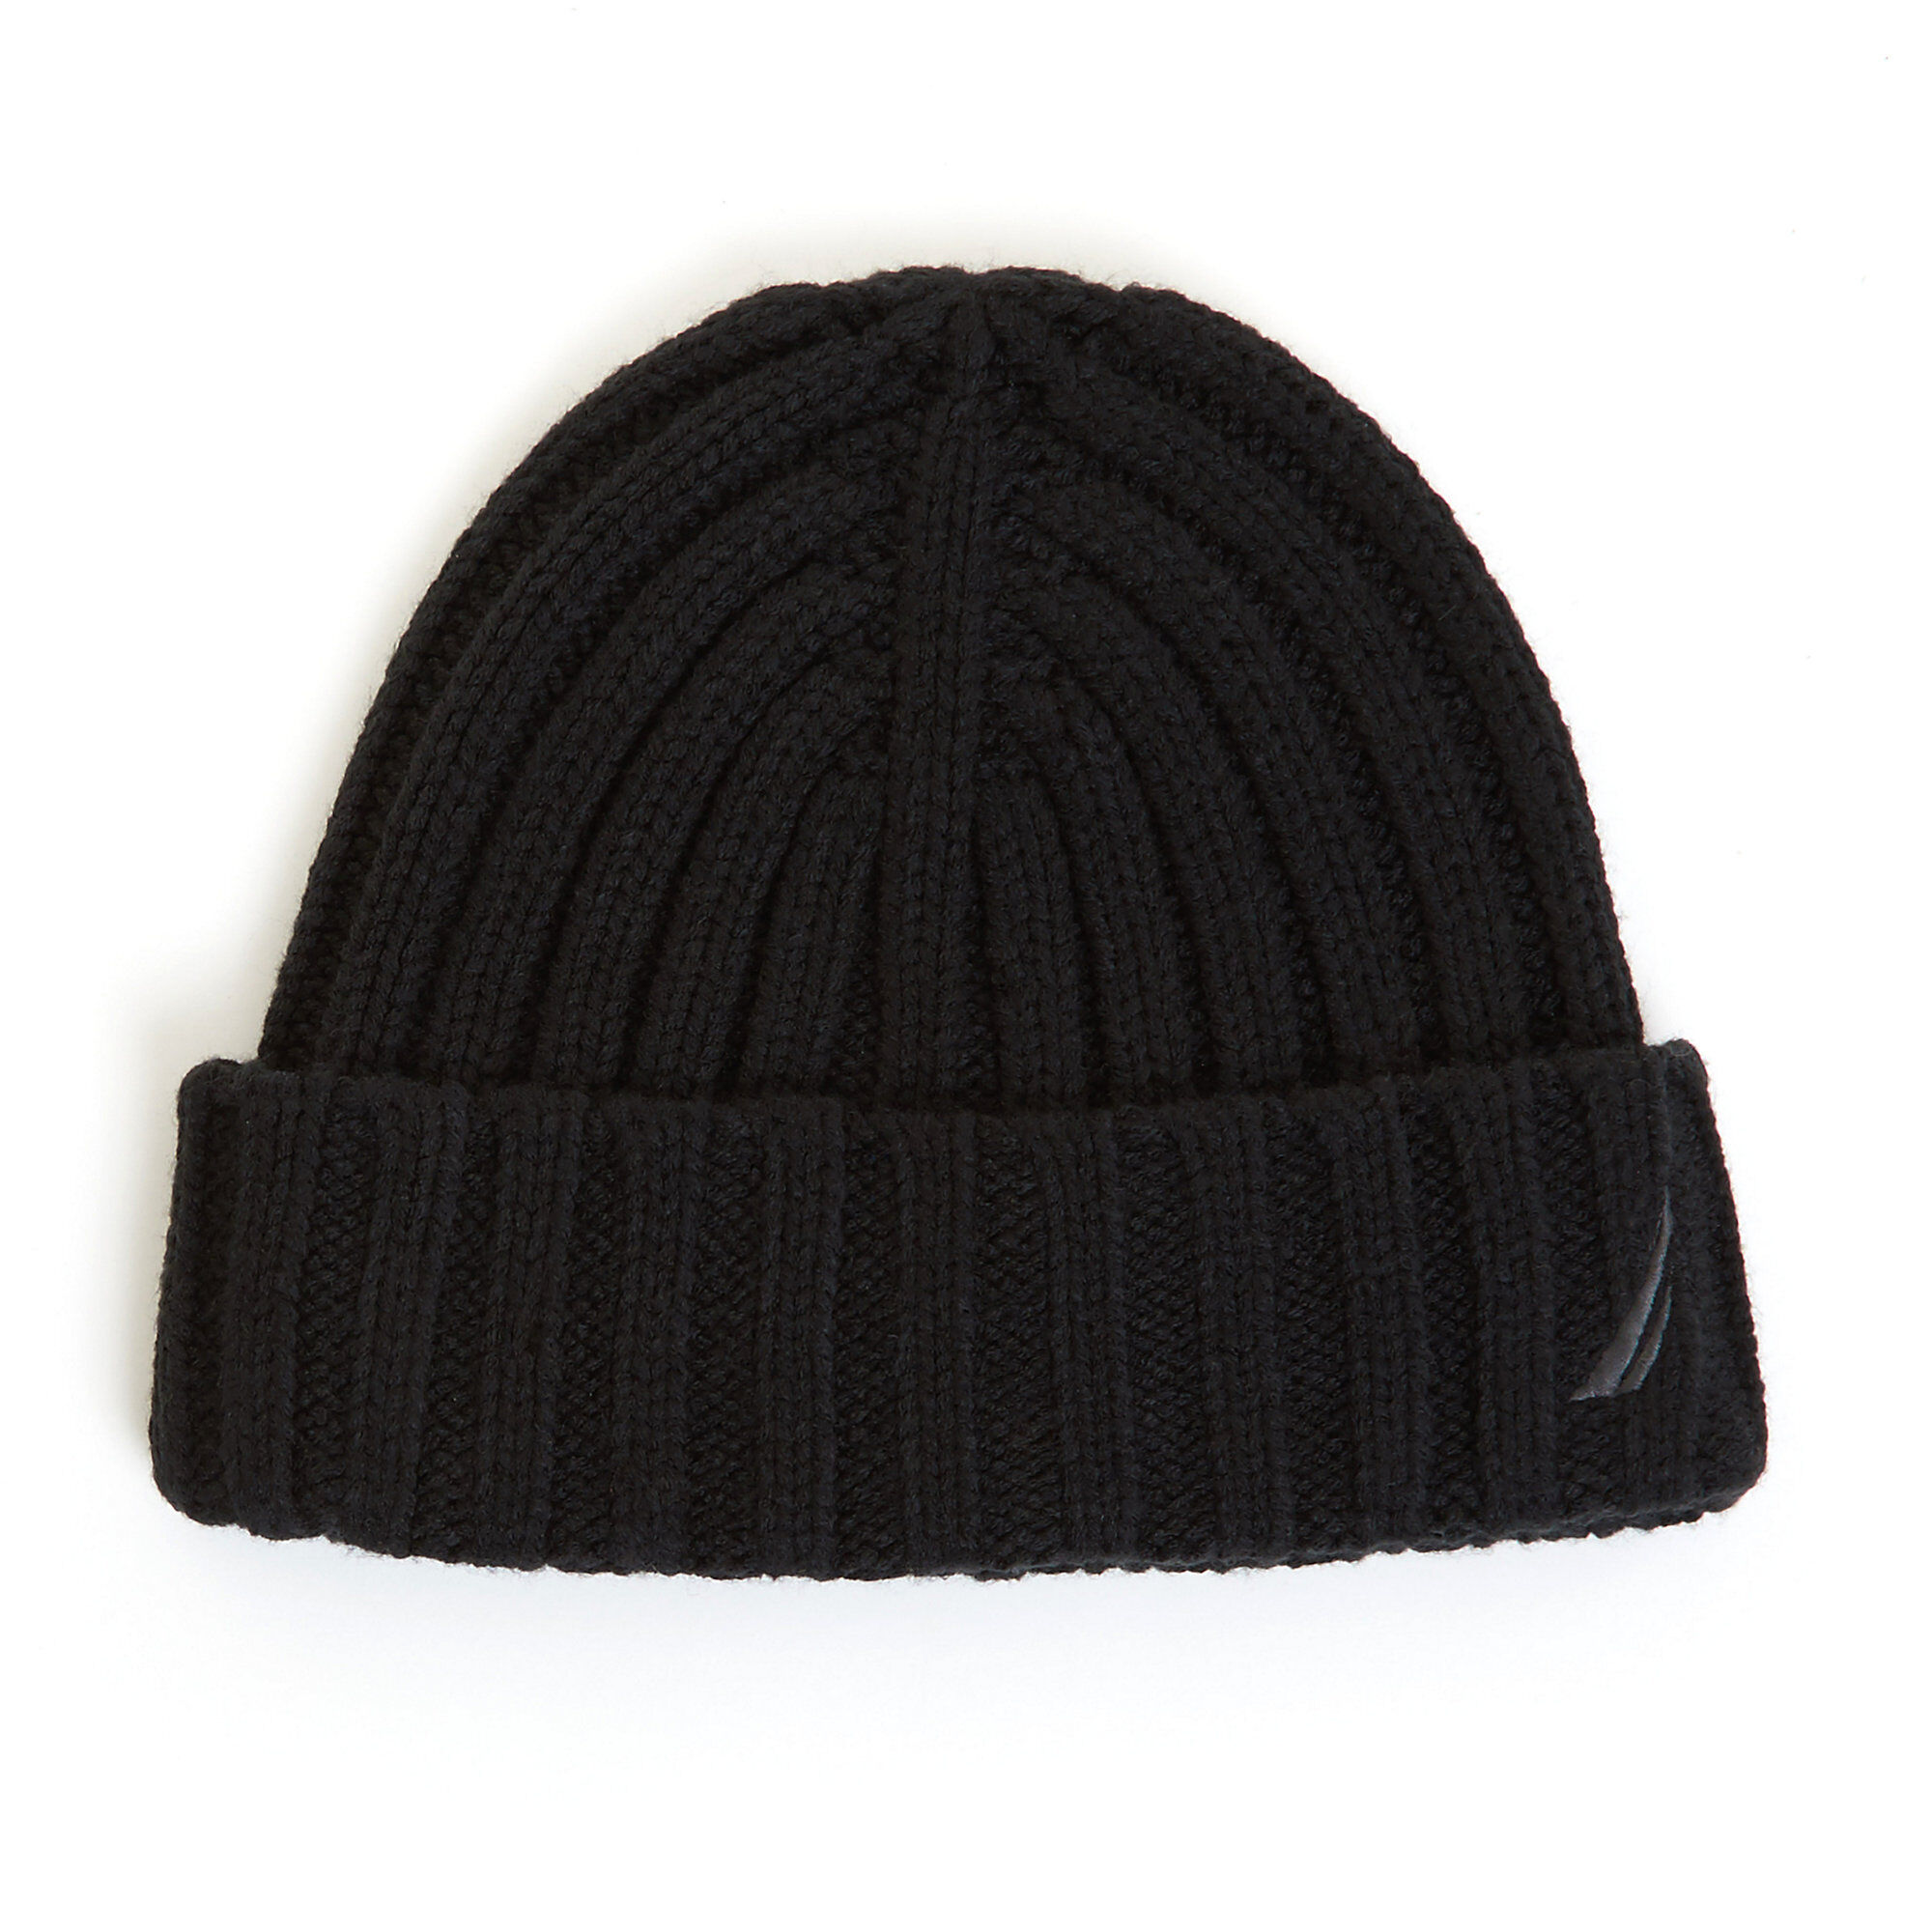 Image is loading Nautica-Mens-Ribbed-Cuff-Knit-Beanie ddcb768bf01a